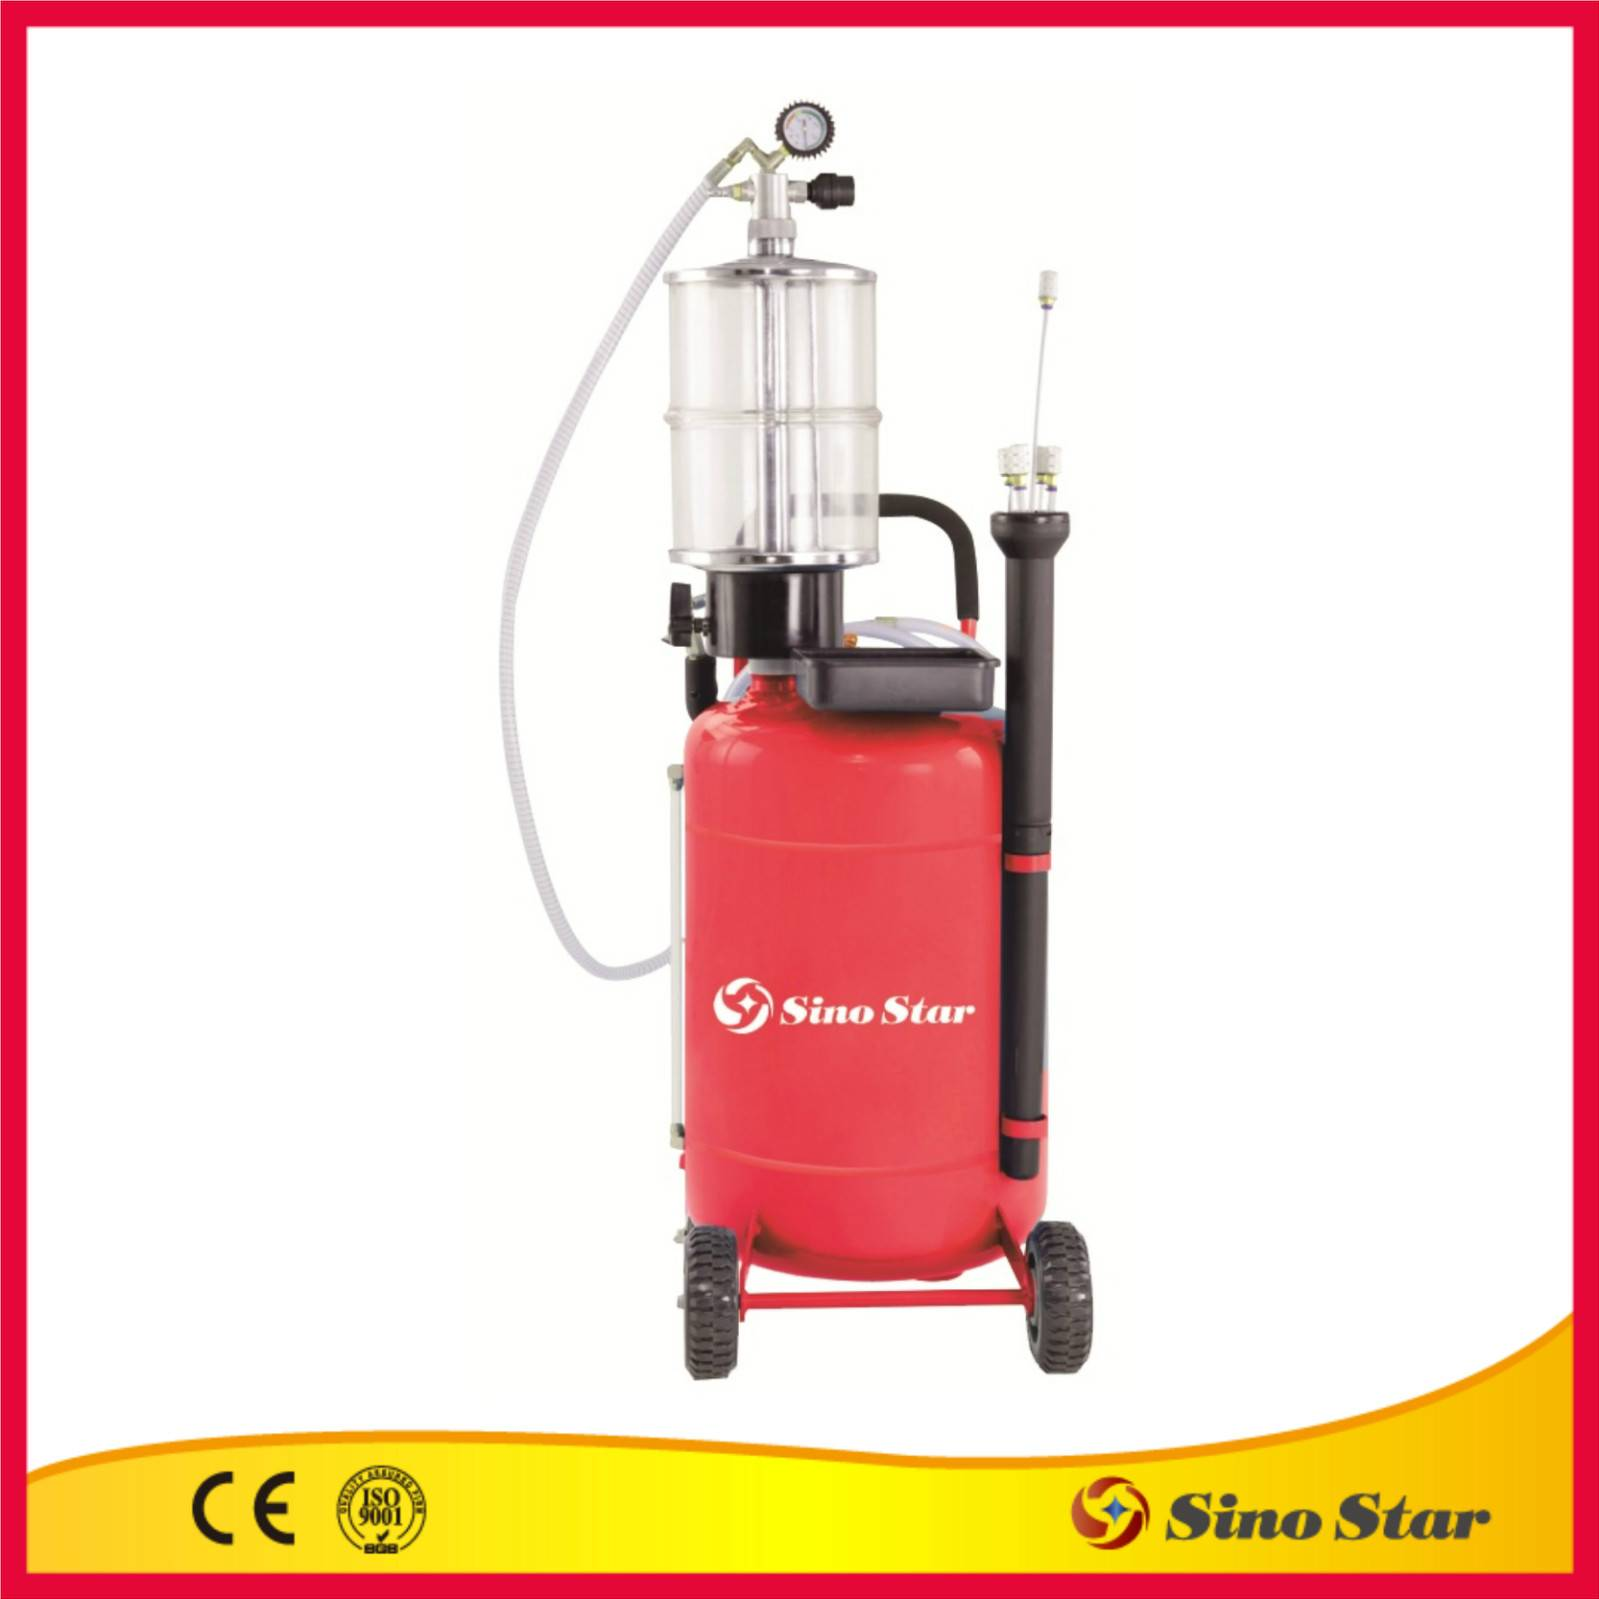 Air Operated Oil Collecting Machine(SS-F43076)